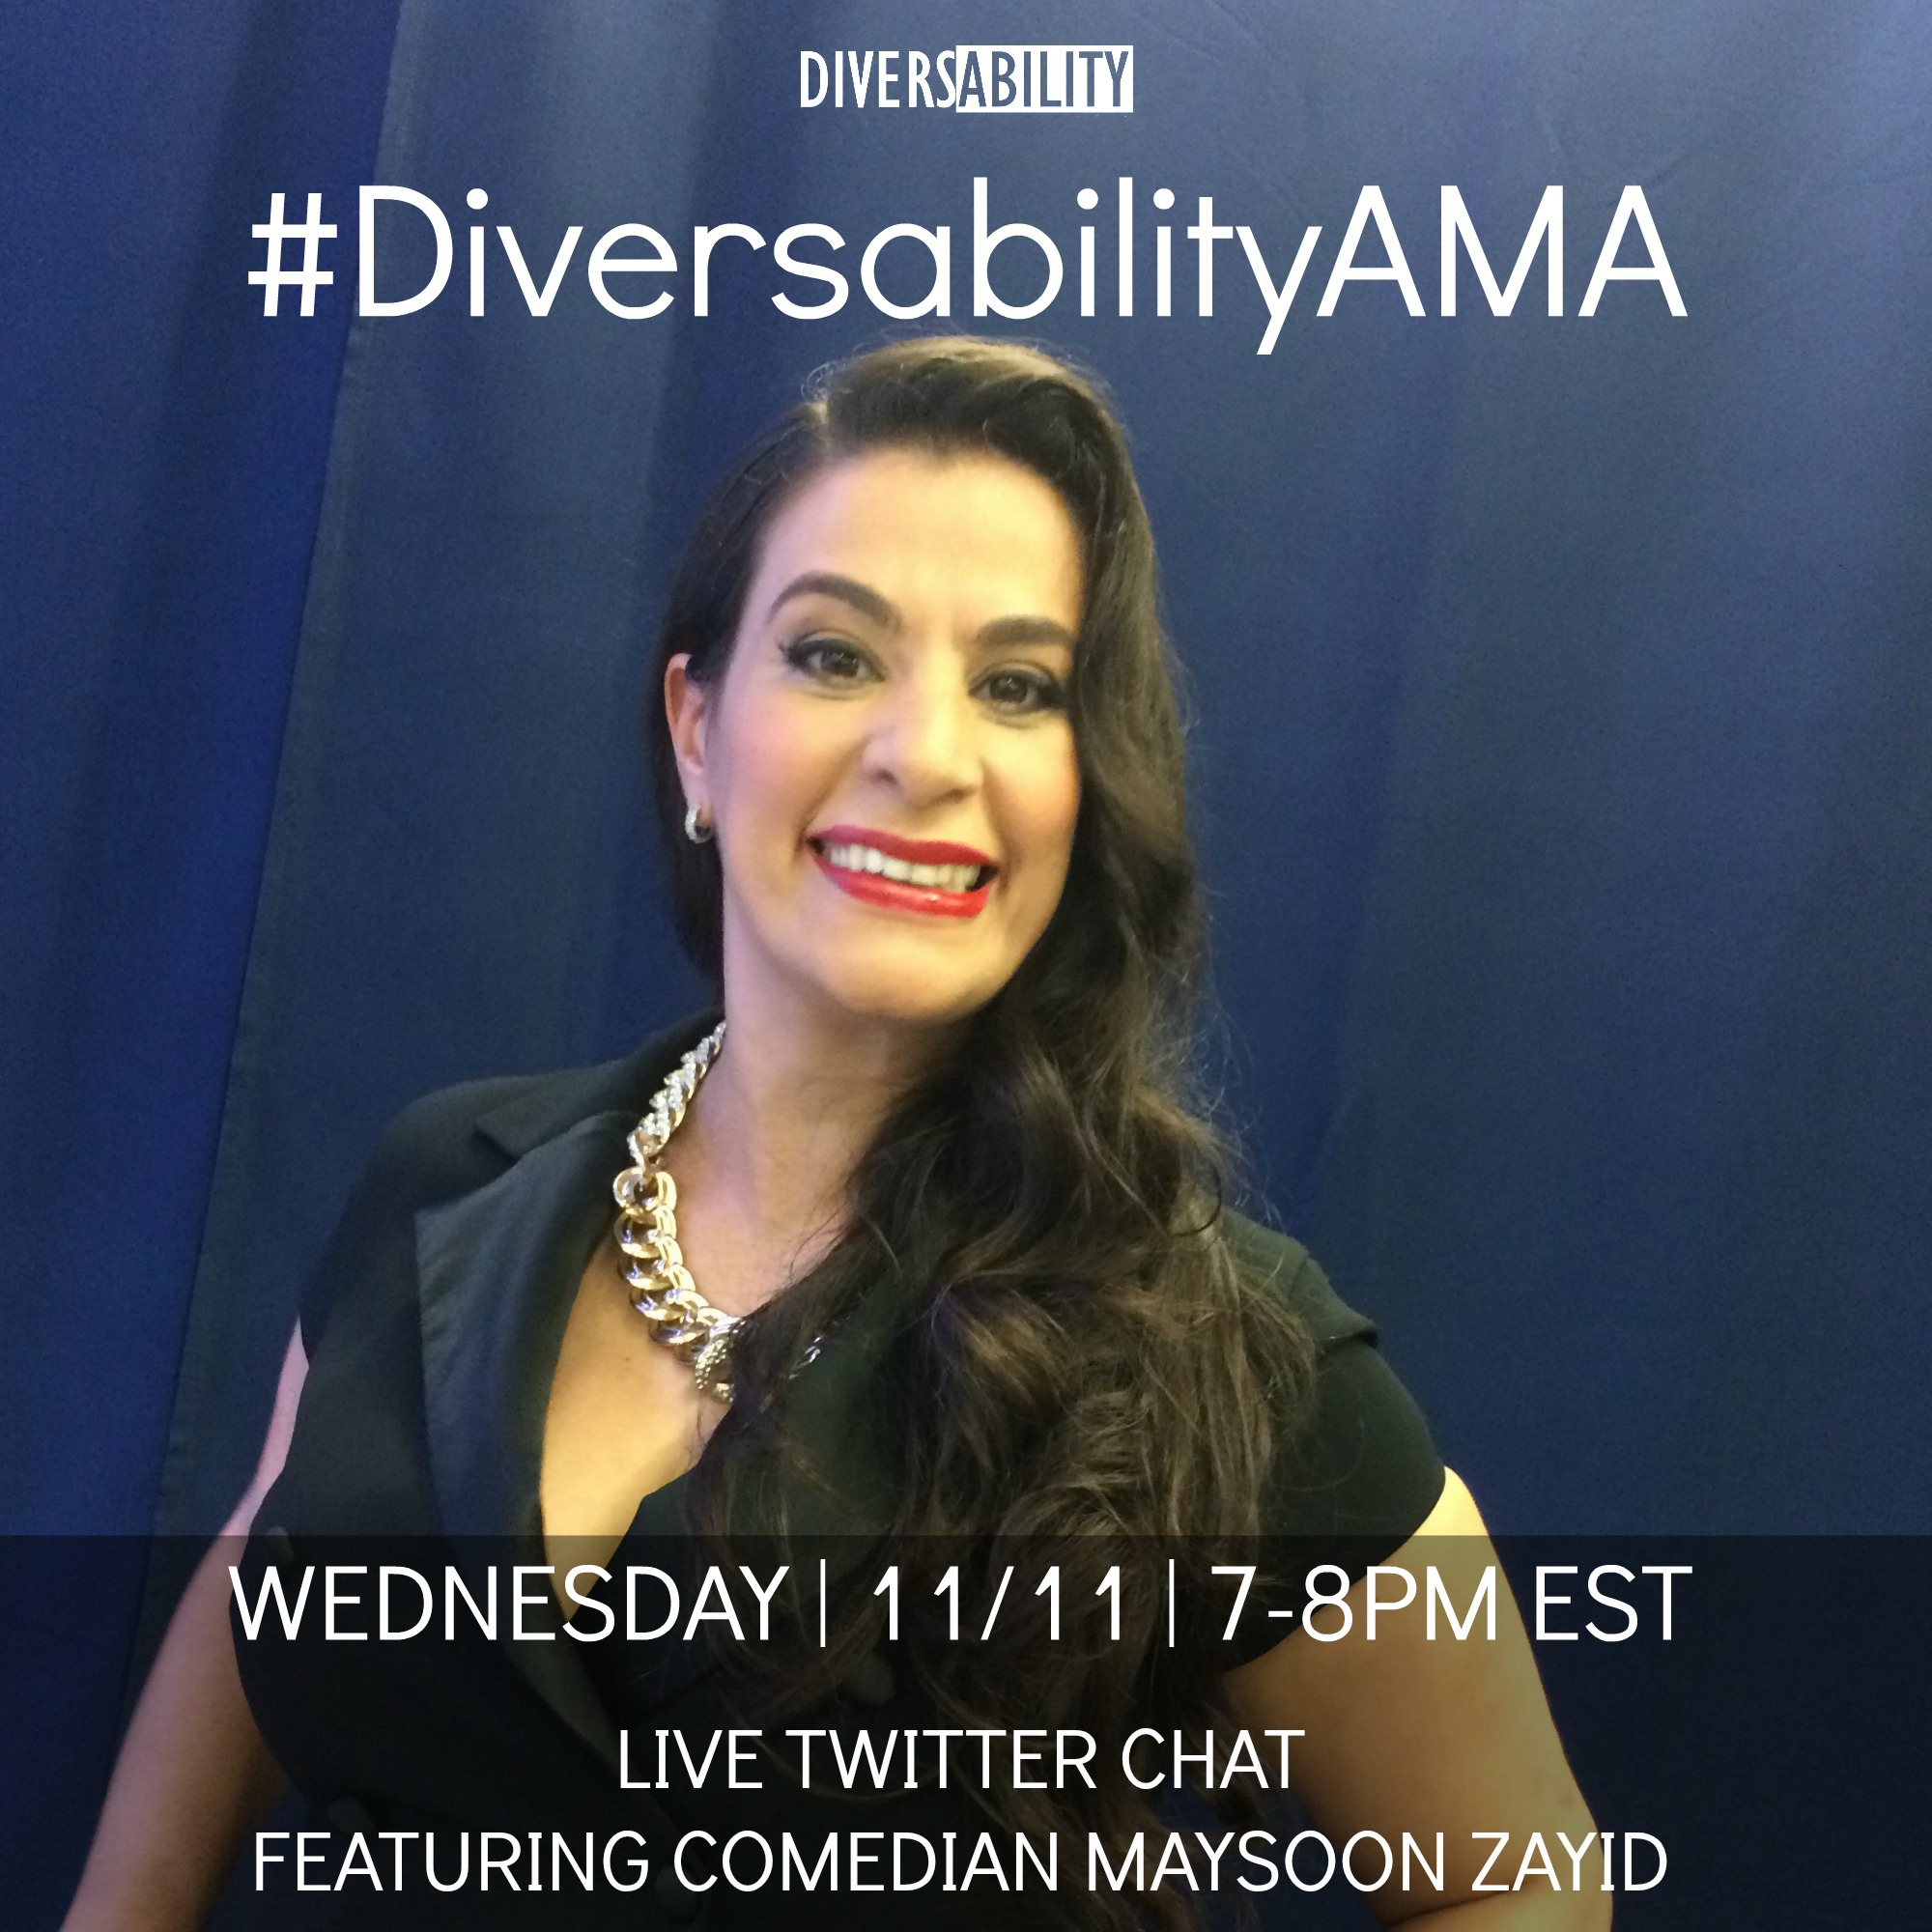 #DiversabilityAMA with Maysoon